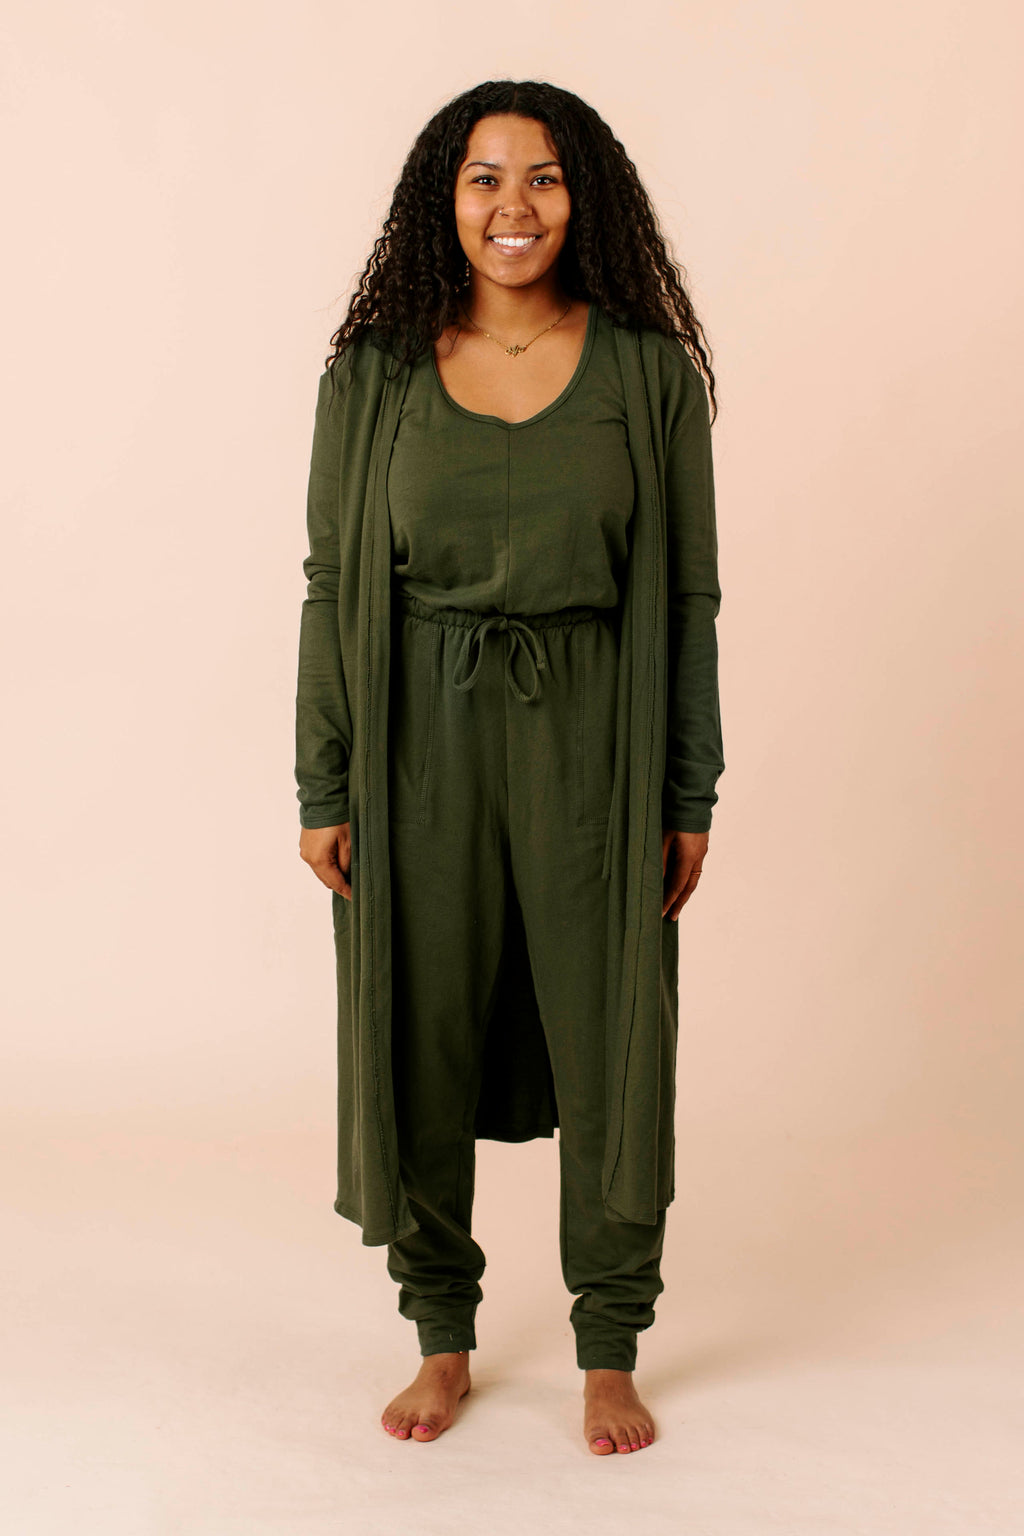 longer, quilted jacket that features light padding, long sleeves, button closure and lapels.